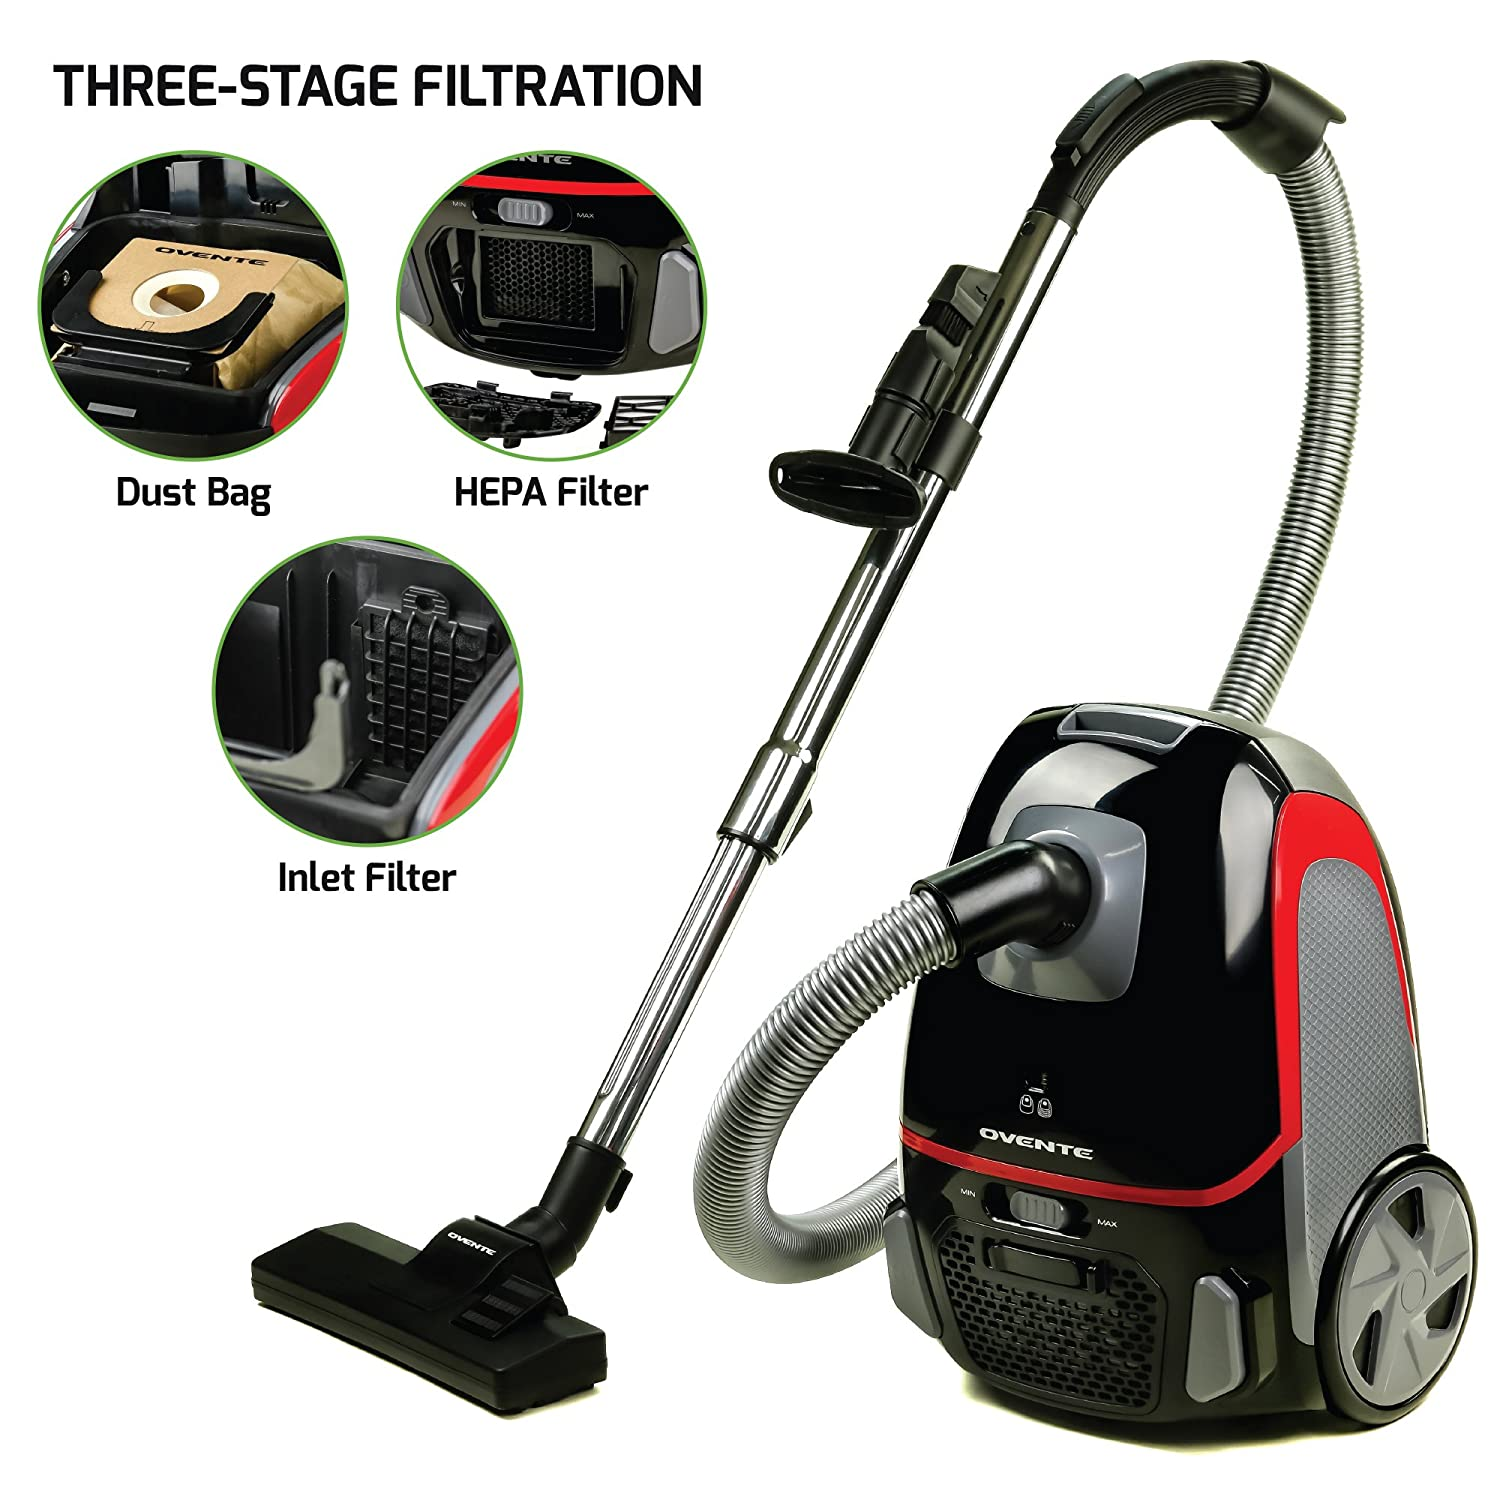 Ovente Electric Vacuum, 3-Stage Filtration with HEPA Filter, Energy-Saving Speed Control, 1400W, Black (ST1600B)